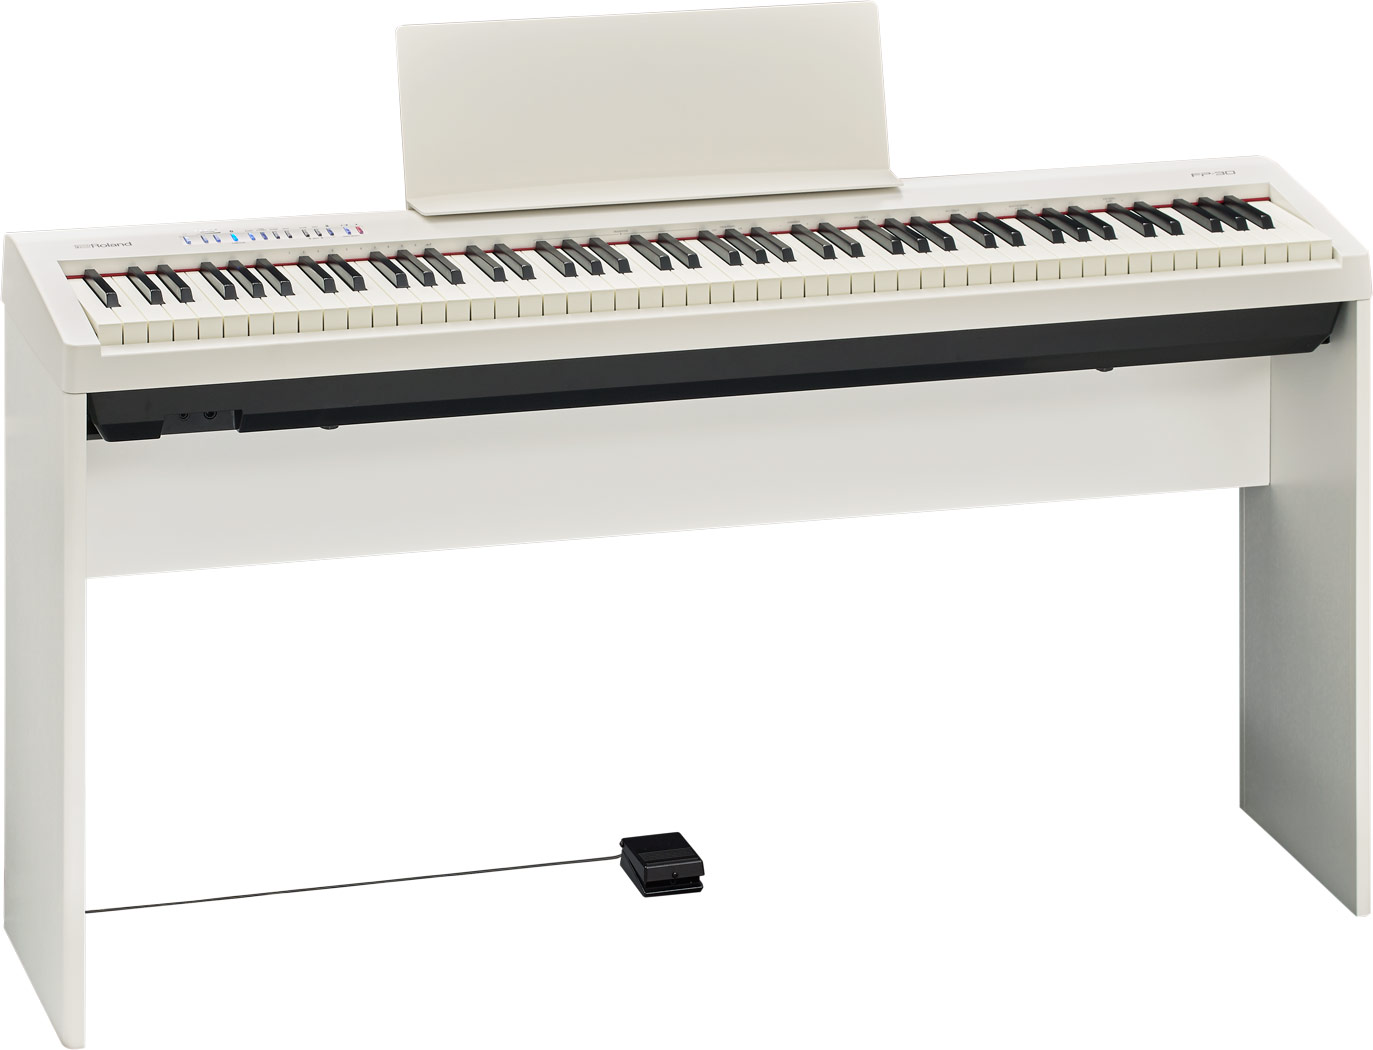 namm roland announces fp 30 digital piano news. Black Bedroom Furniture Sets. Home Design Ideas